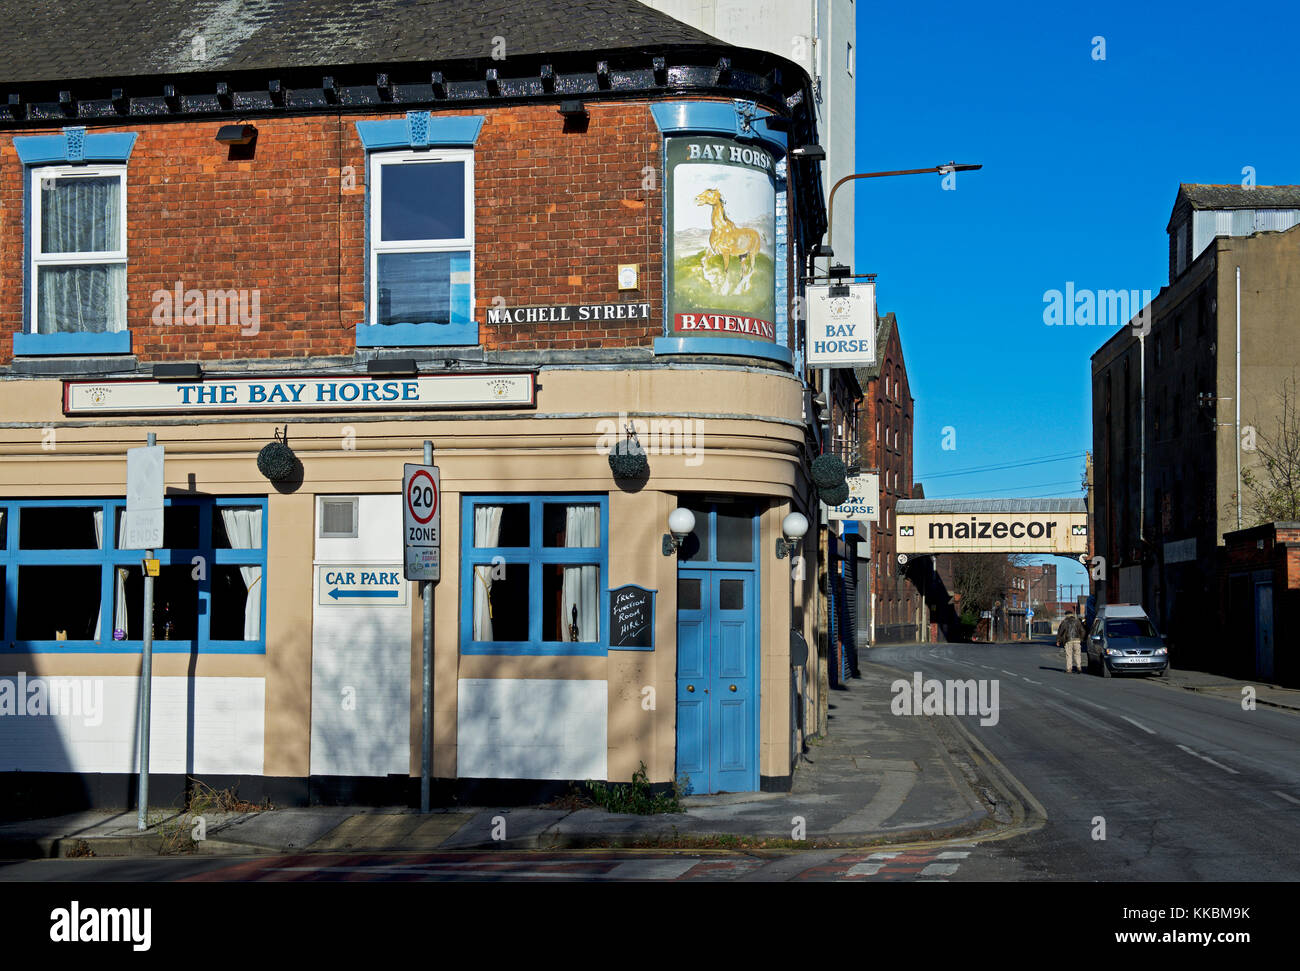 The Bay Horse pub, now closed, Hull, Humberside, East Yorkshire, England UK - Stock Image